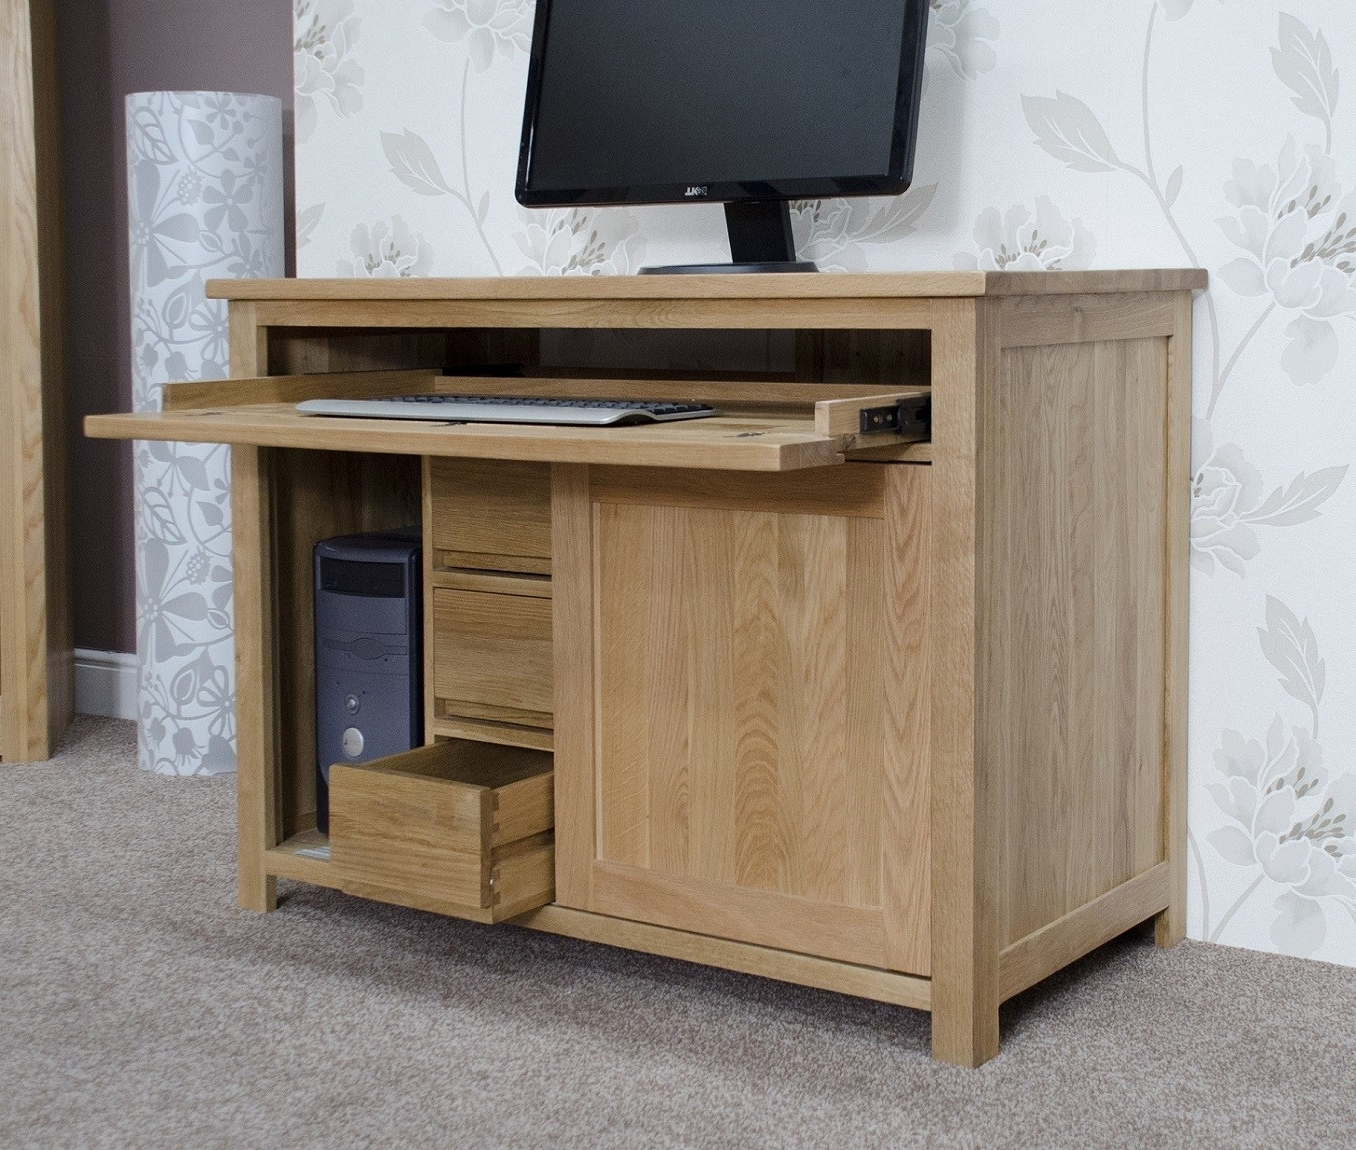 Oak Furniture Uk (View 8 of 20)